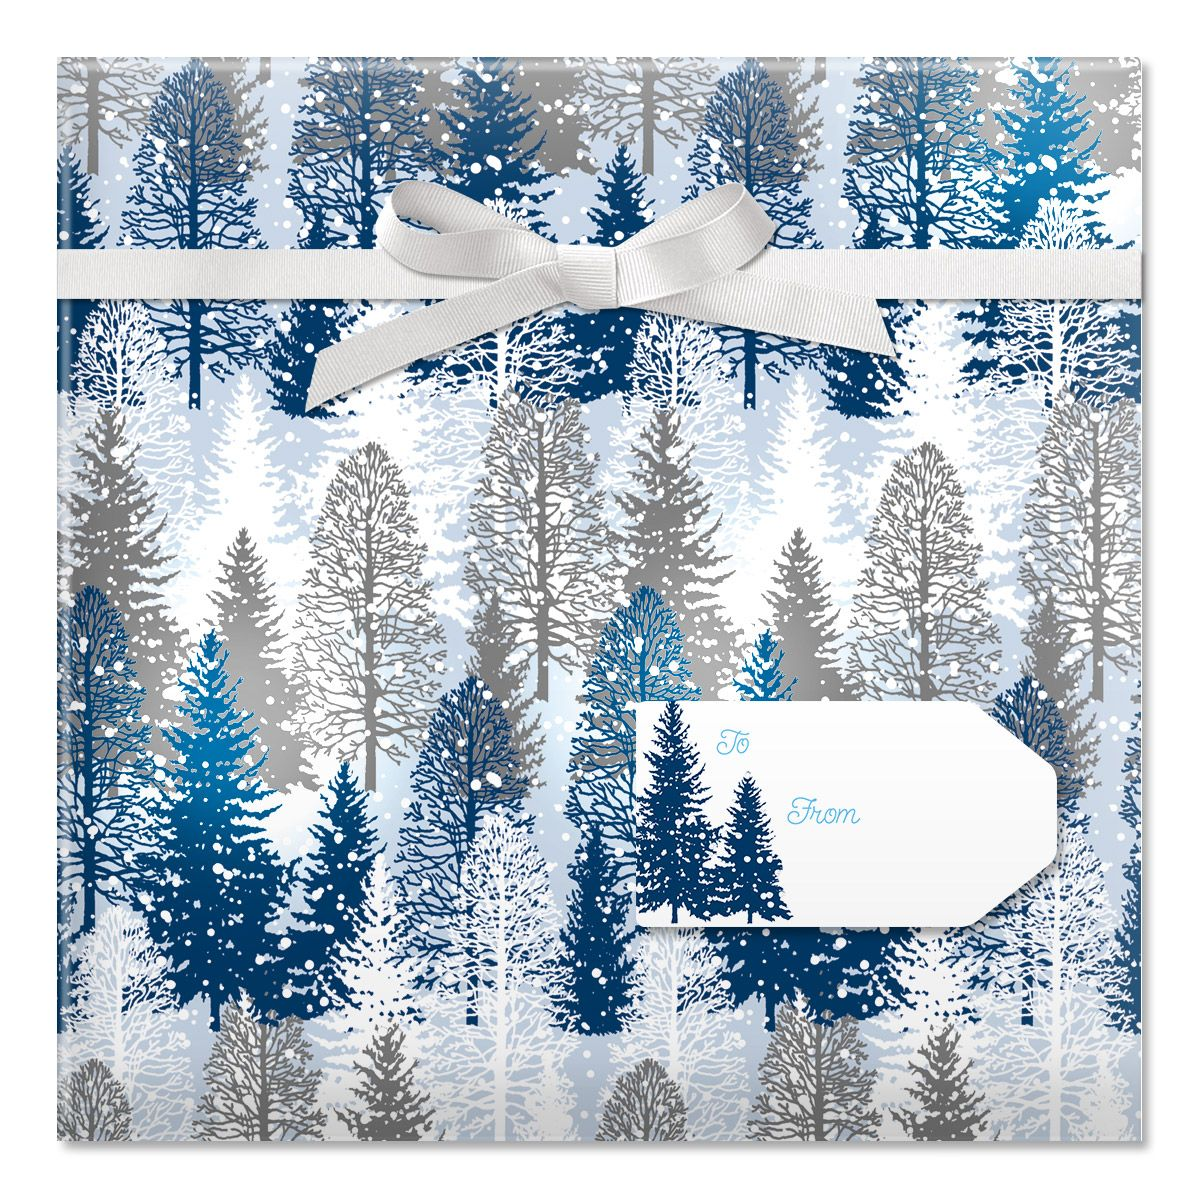 Snowmen Friendly Chat Jumbo Rolled Gift Wrap and Labels